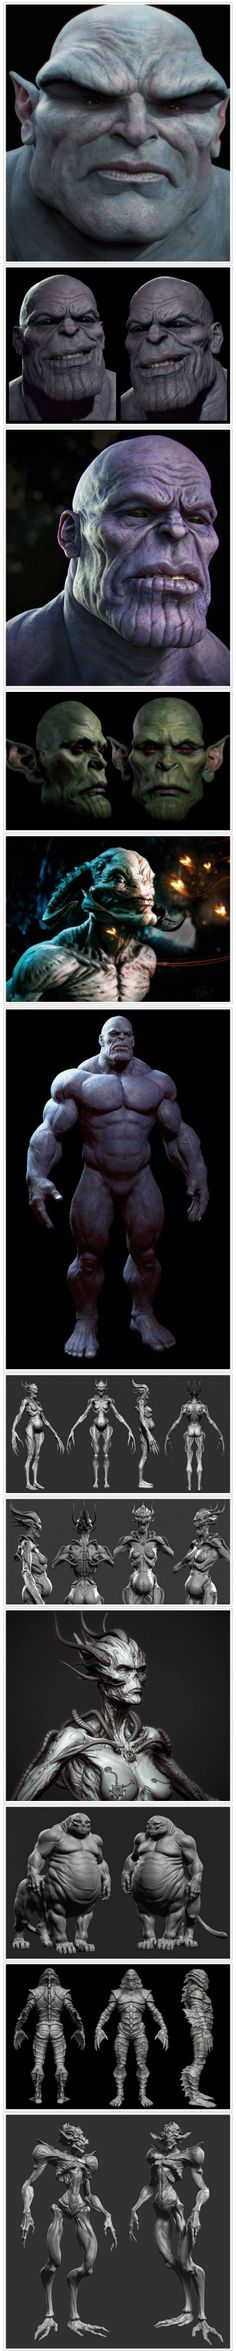 3D models - ZBrush Bunch of Sculpts, particularly like the sculpt of Thanos